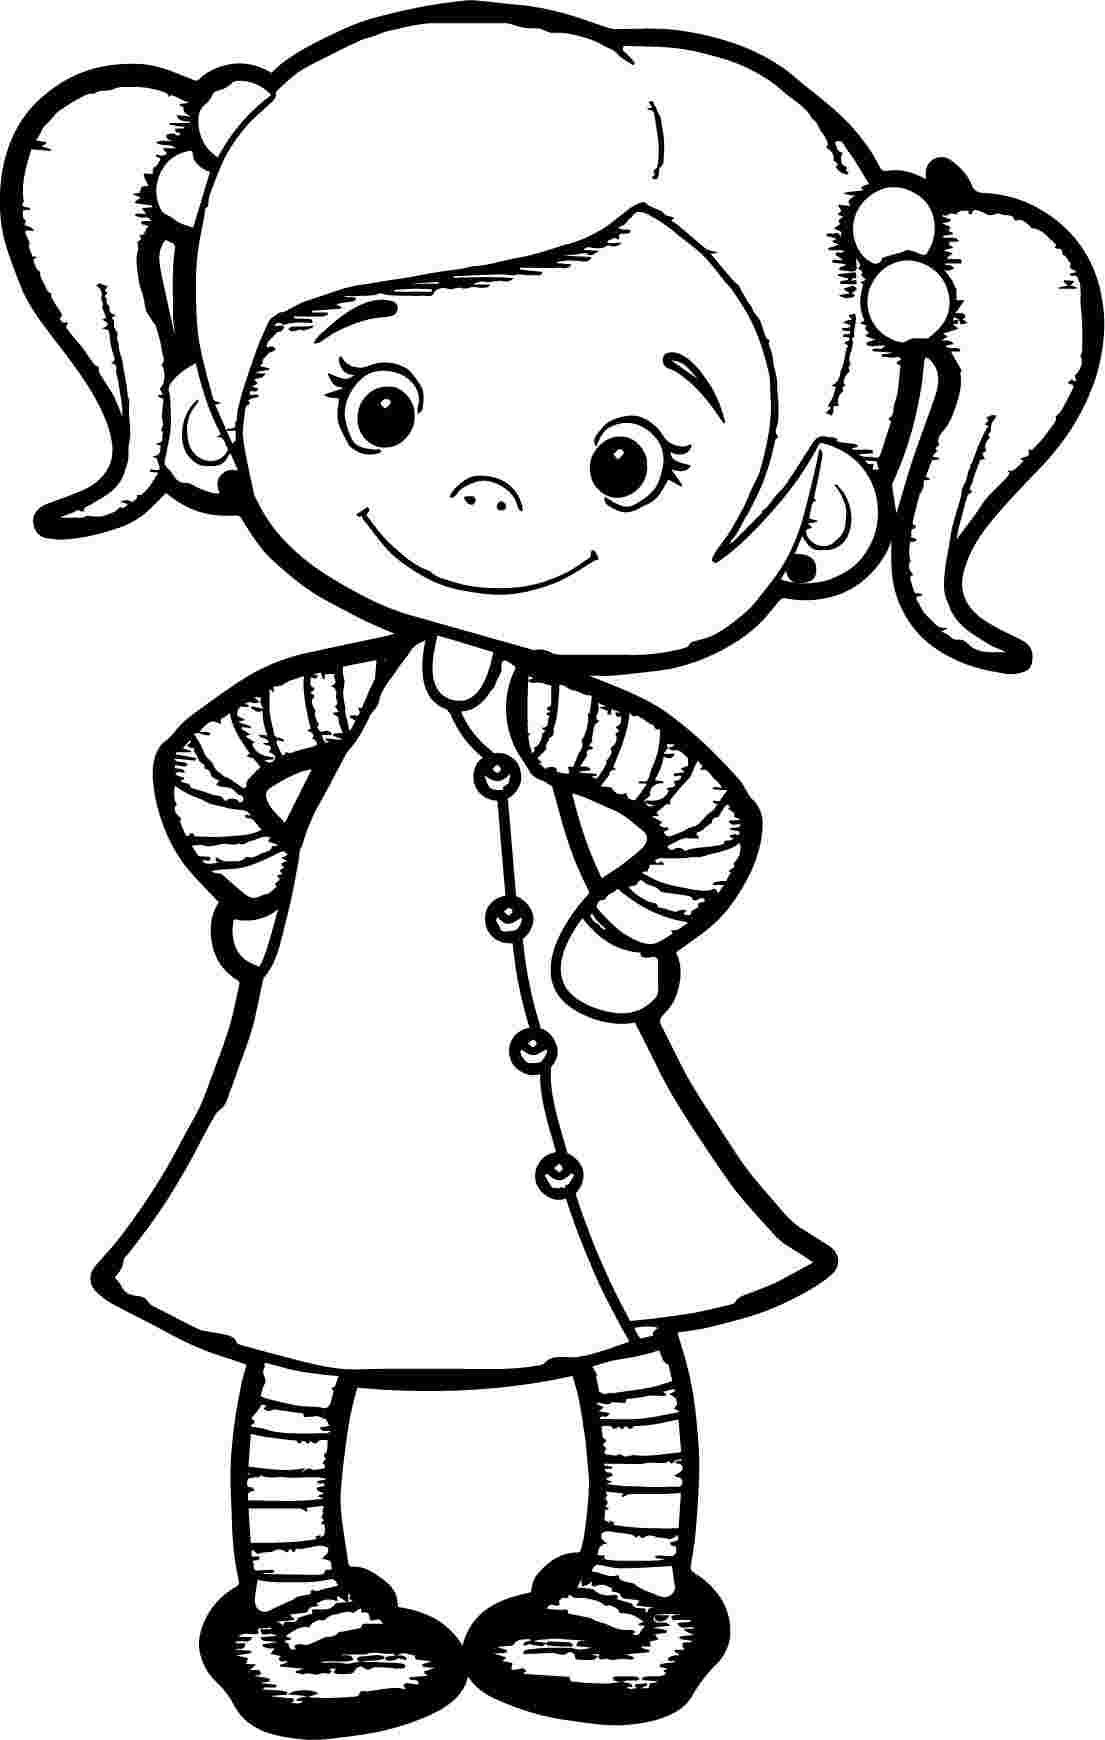 Free Printable Coloring Pages For Little Girls Cartoon Coloring Pages Coloring Pages For Girls Coloring Pages For Boys